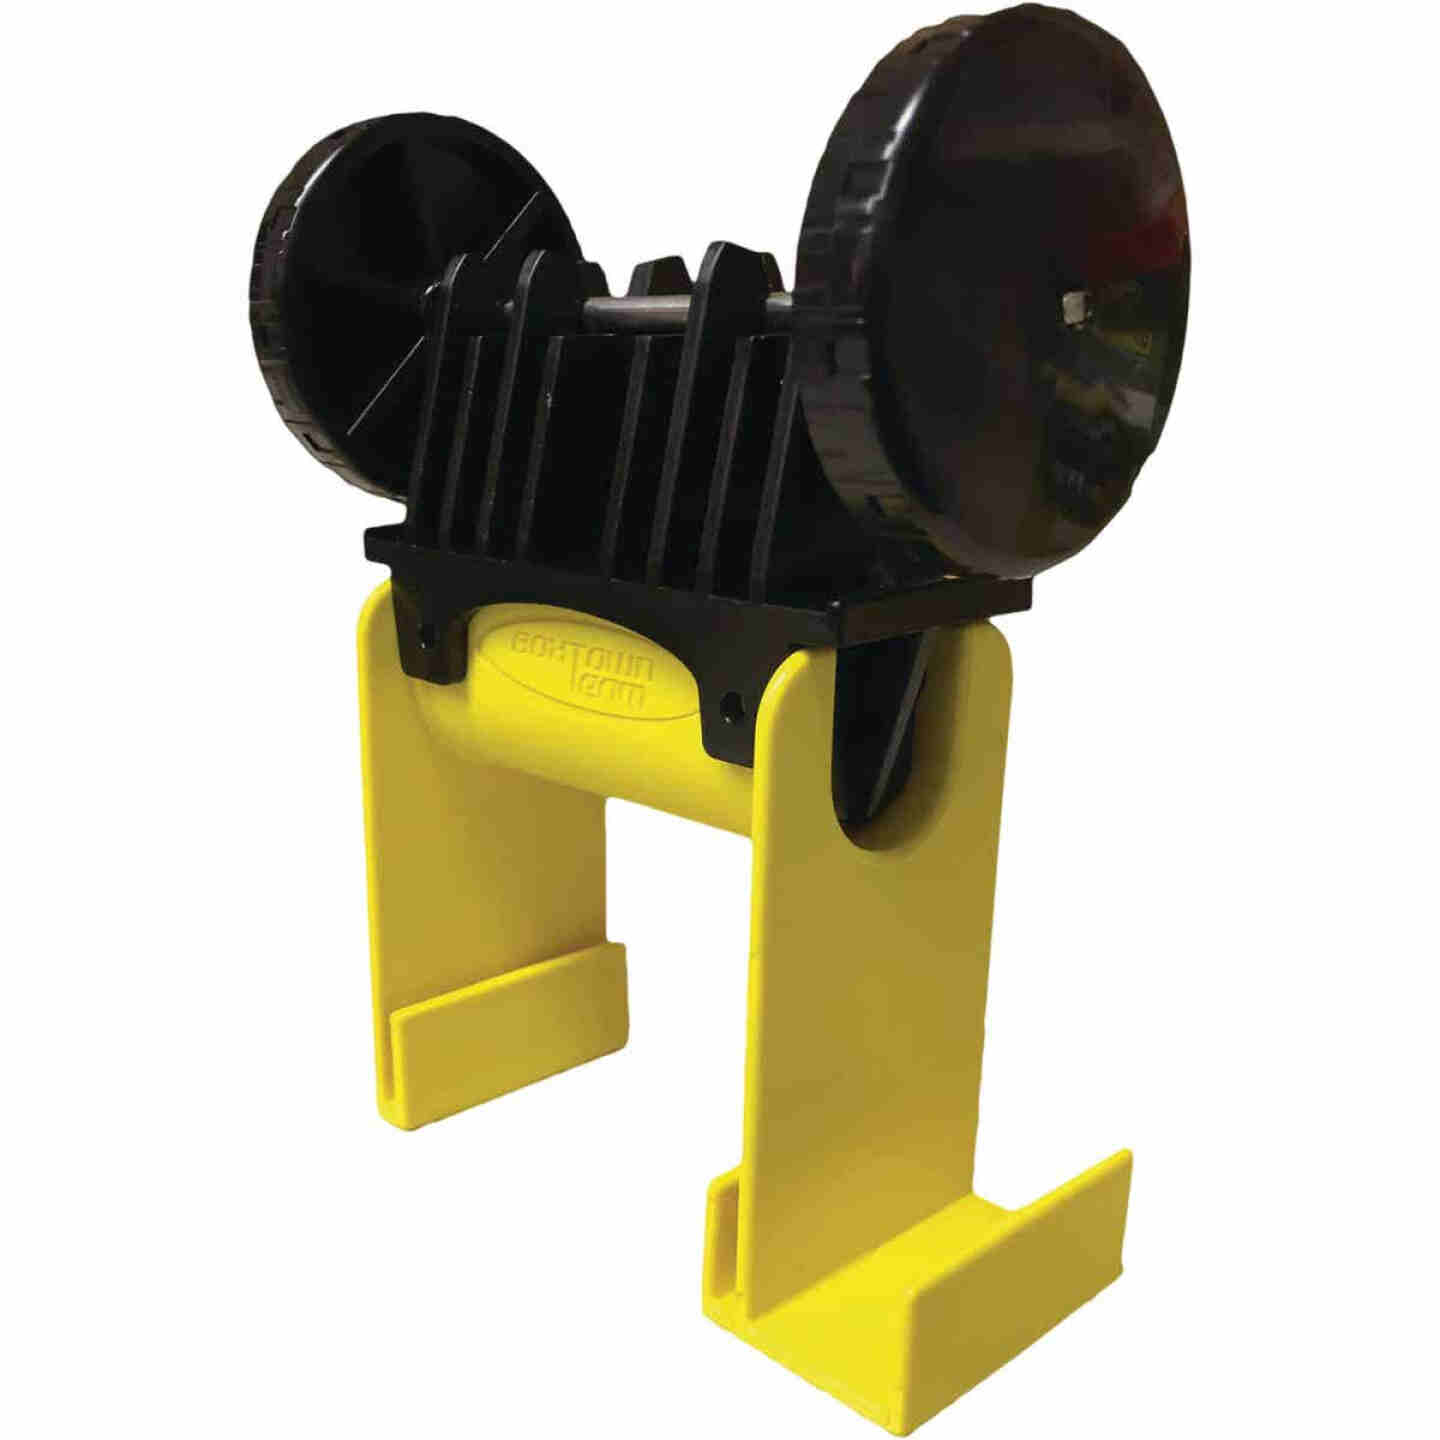 Boxtown Team 3.75 In. x 6 In. Ladder Roller/Carrier Image 2